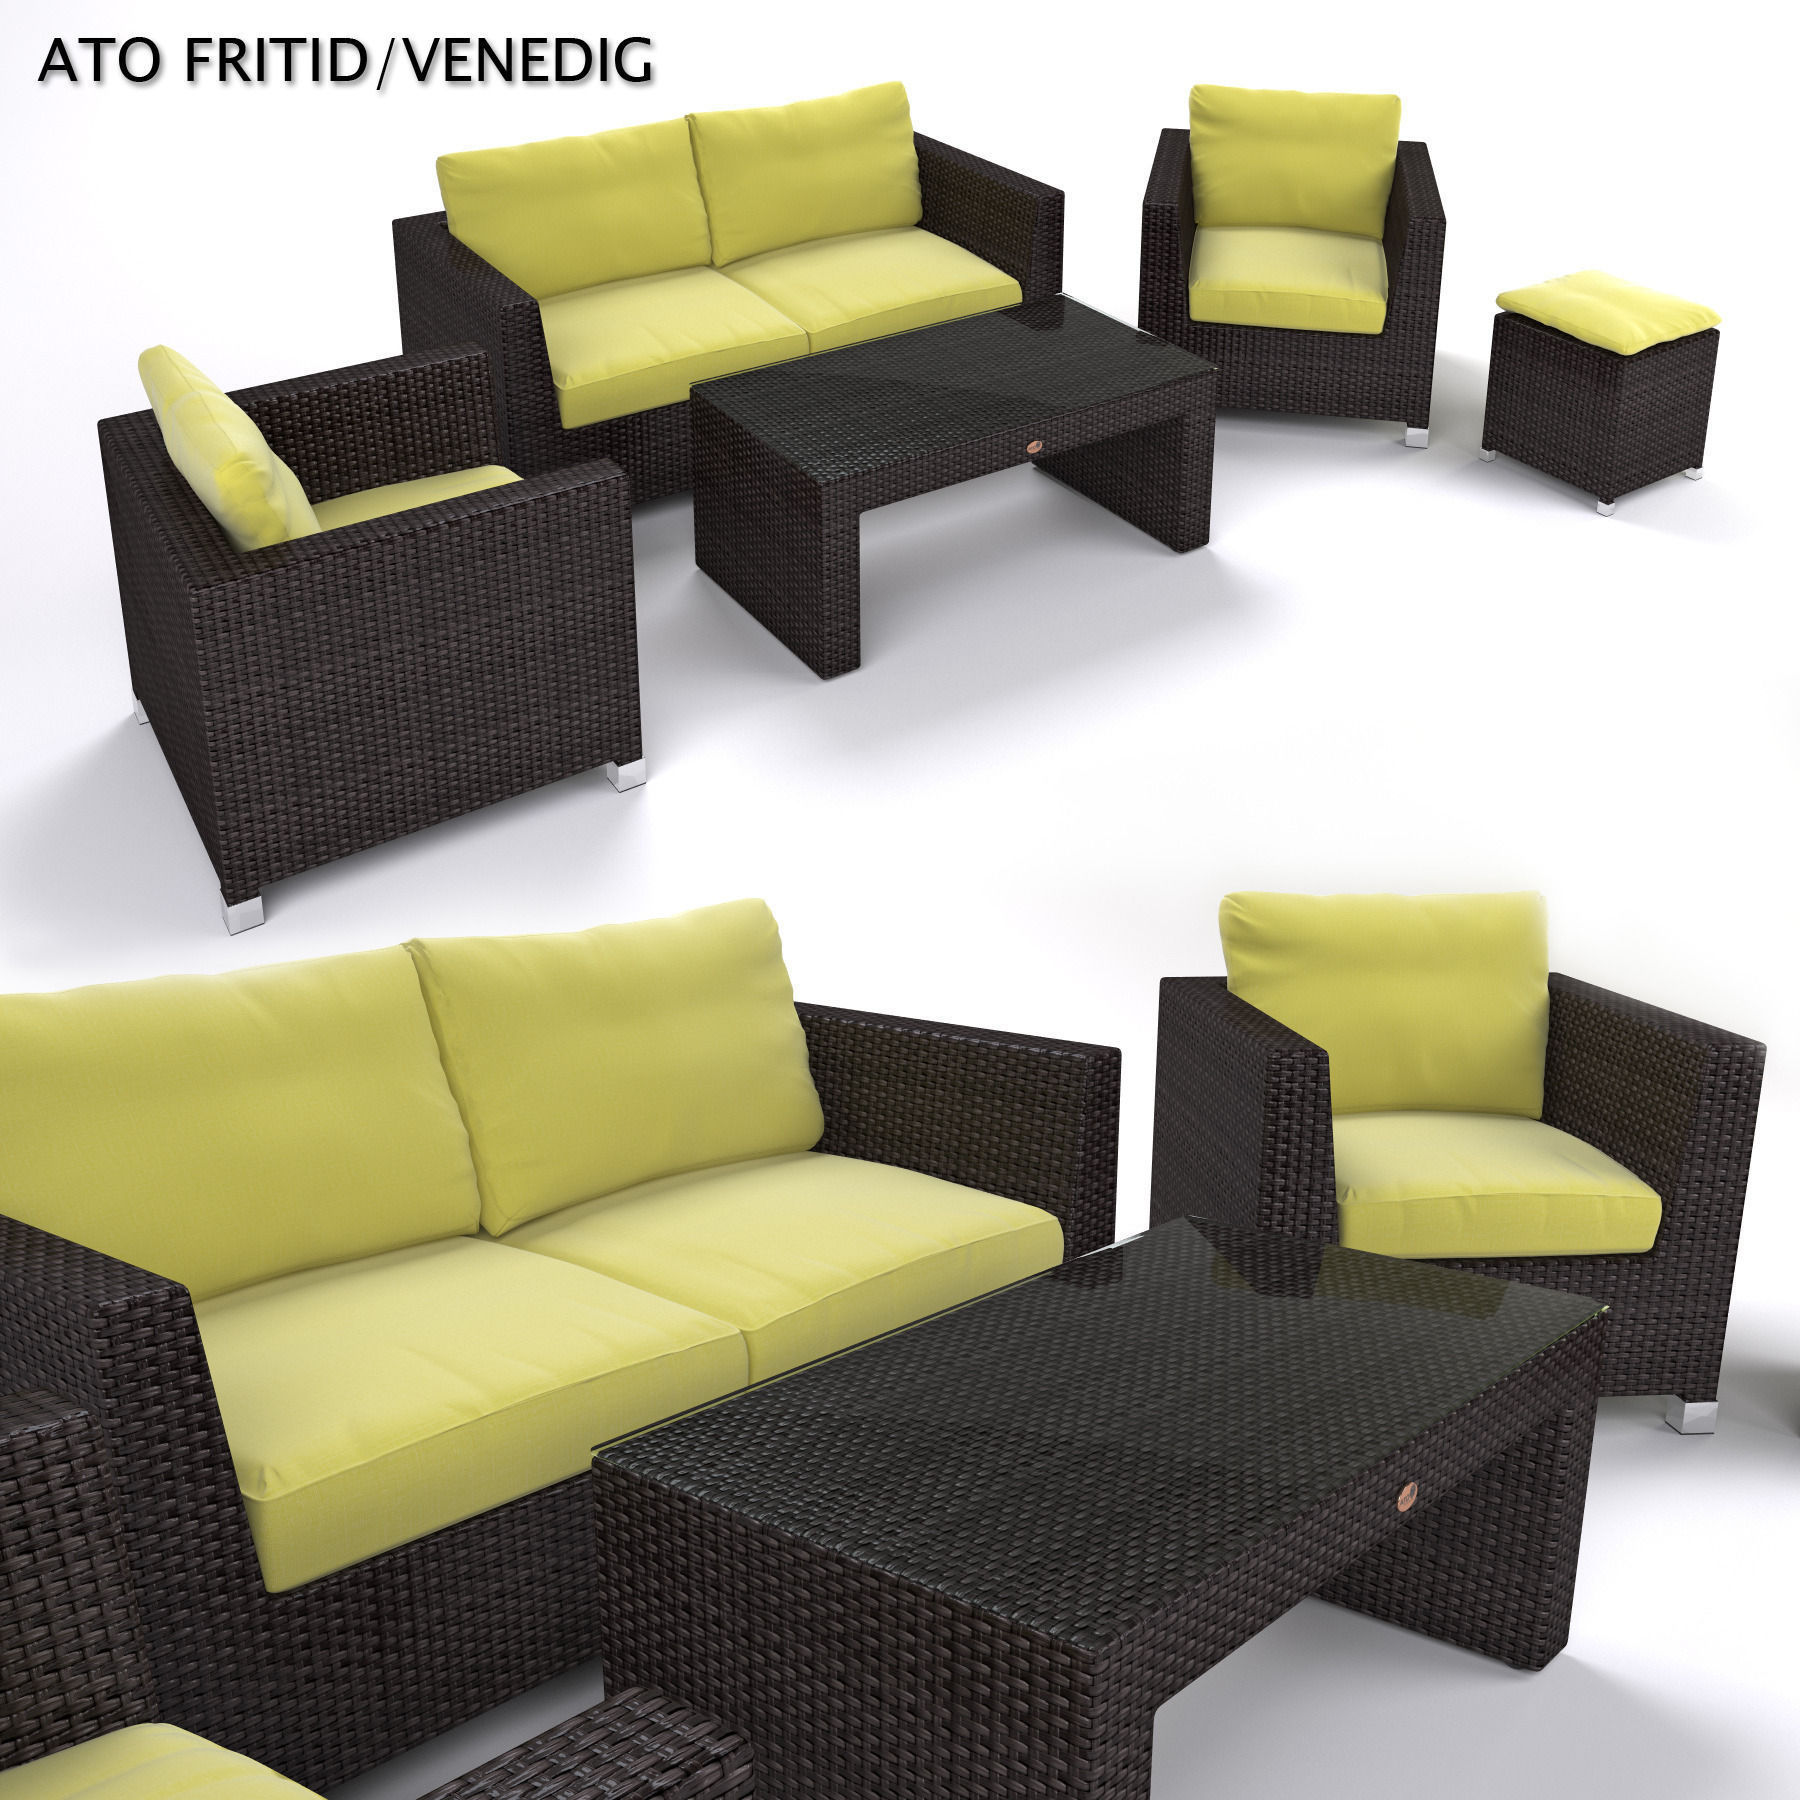 Garden Furniture Synthetic Rattan Set ATO Venedig 3D model MAX